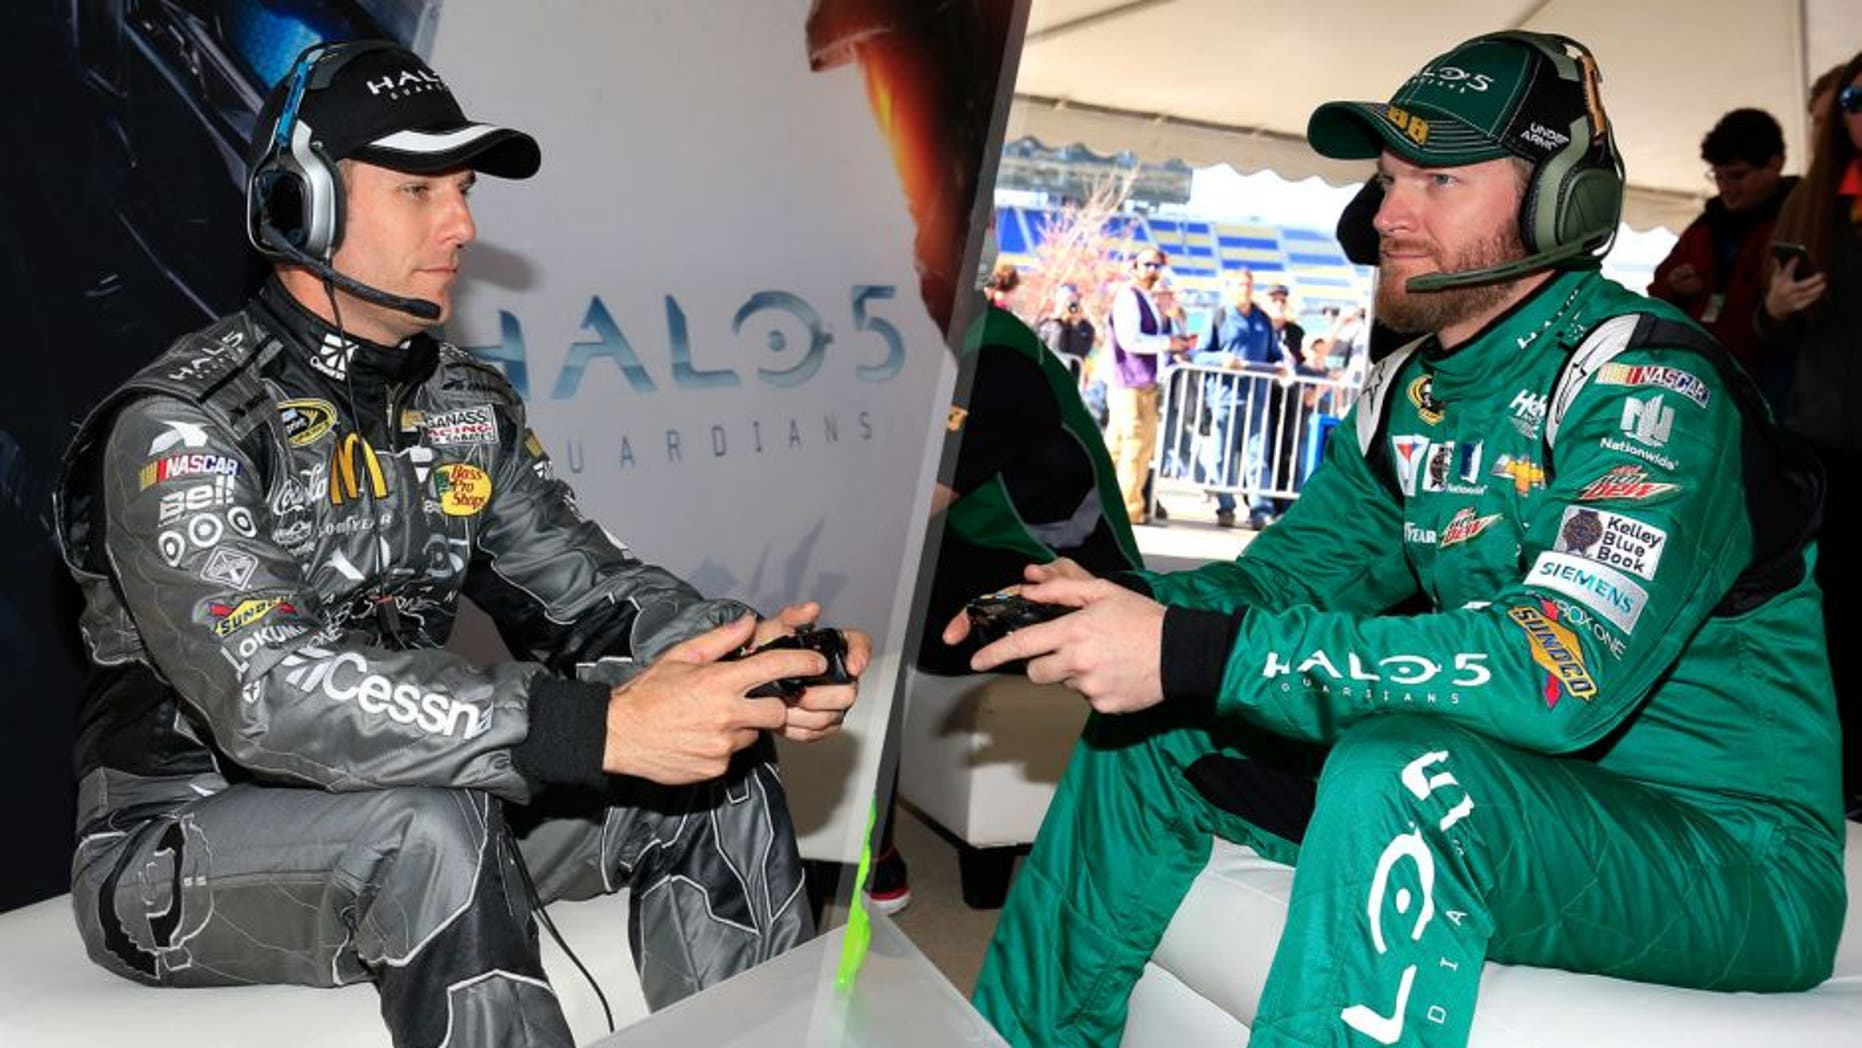 KANSAS CITY, KS - OCTOBER 16: Dale Earnhardt Jr., driver of the #88 Halo 5: Master Chief Chevrolet, and Jamie McMurray, driver of the #1 Halo 5: Spartan Locke/Cessna Chevrolet, play Halo 5 Guardians following practice for the NASCAR Sprint Cup Series Hollywood Casino 400 at Kansas Speedway on October 16, 2015 in Kansas City, Kansas. (Photo by Chris Trotman/NASCAR via Getty Images), KANSAS CITY, KS - OCTOBER 16: Dale Earnhardt Jr., driver of the #88 Halo 5: Master Chief Chevrolet, plays Halo 5 Guardians following practice for the NASCAR Sprint Cup Series Hollywood Casino 400 at Kansas Speedway on October 16, 2015 in Kansas City, Kansas. (Photo by Chris Trotman/NASCAR via Getty Images)